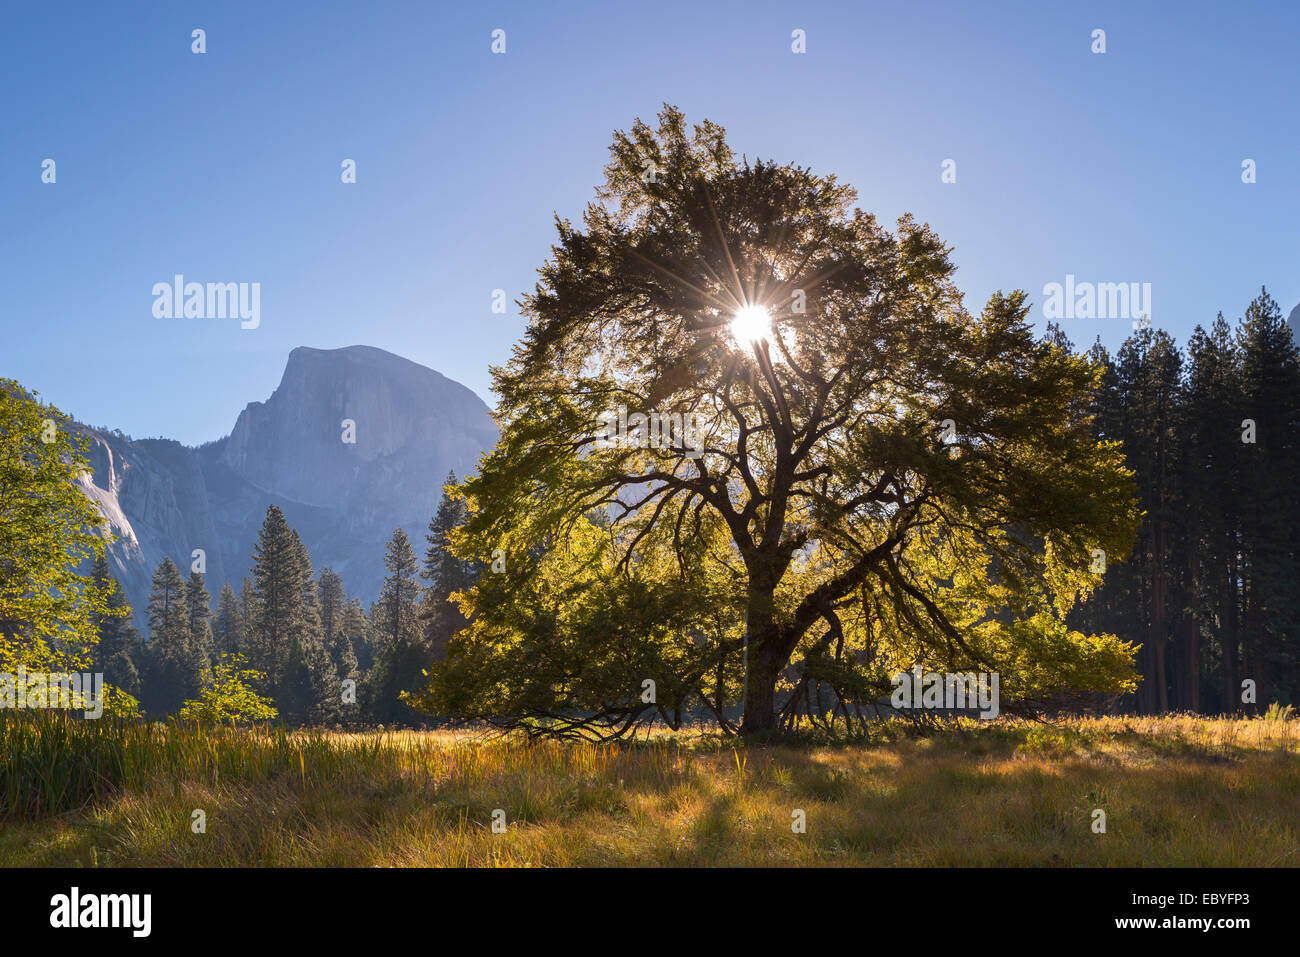 Half Dome and Elm tree in Cooks Meadow, Yosemite Valley, California, USA. Autumn (October) 2014. Stock Photo